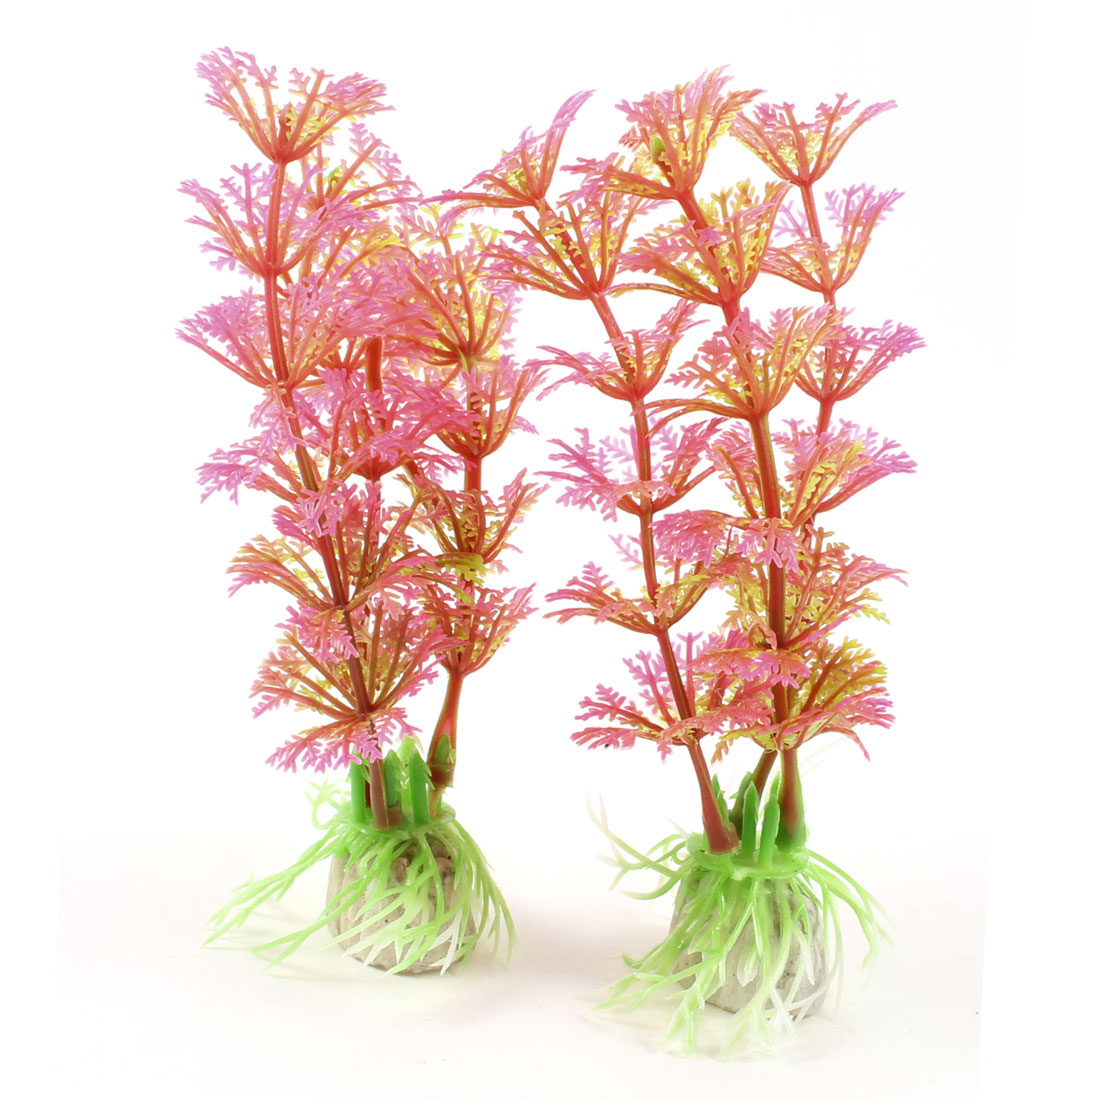 2 Pcs Aquarium Landscaping Plastic Water Plant Grass Ornament Green Fuchsia